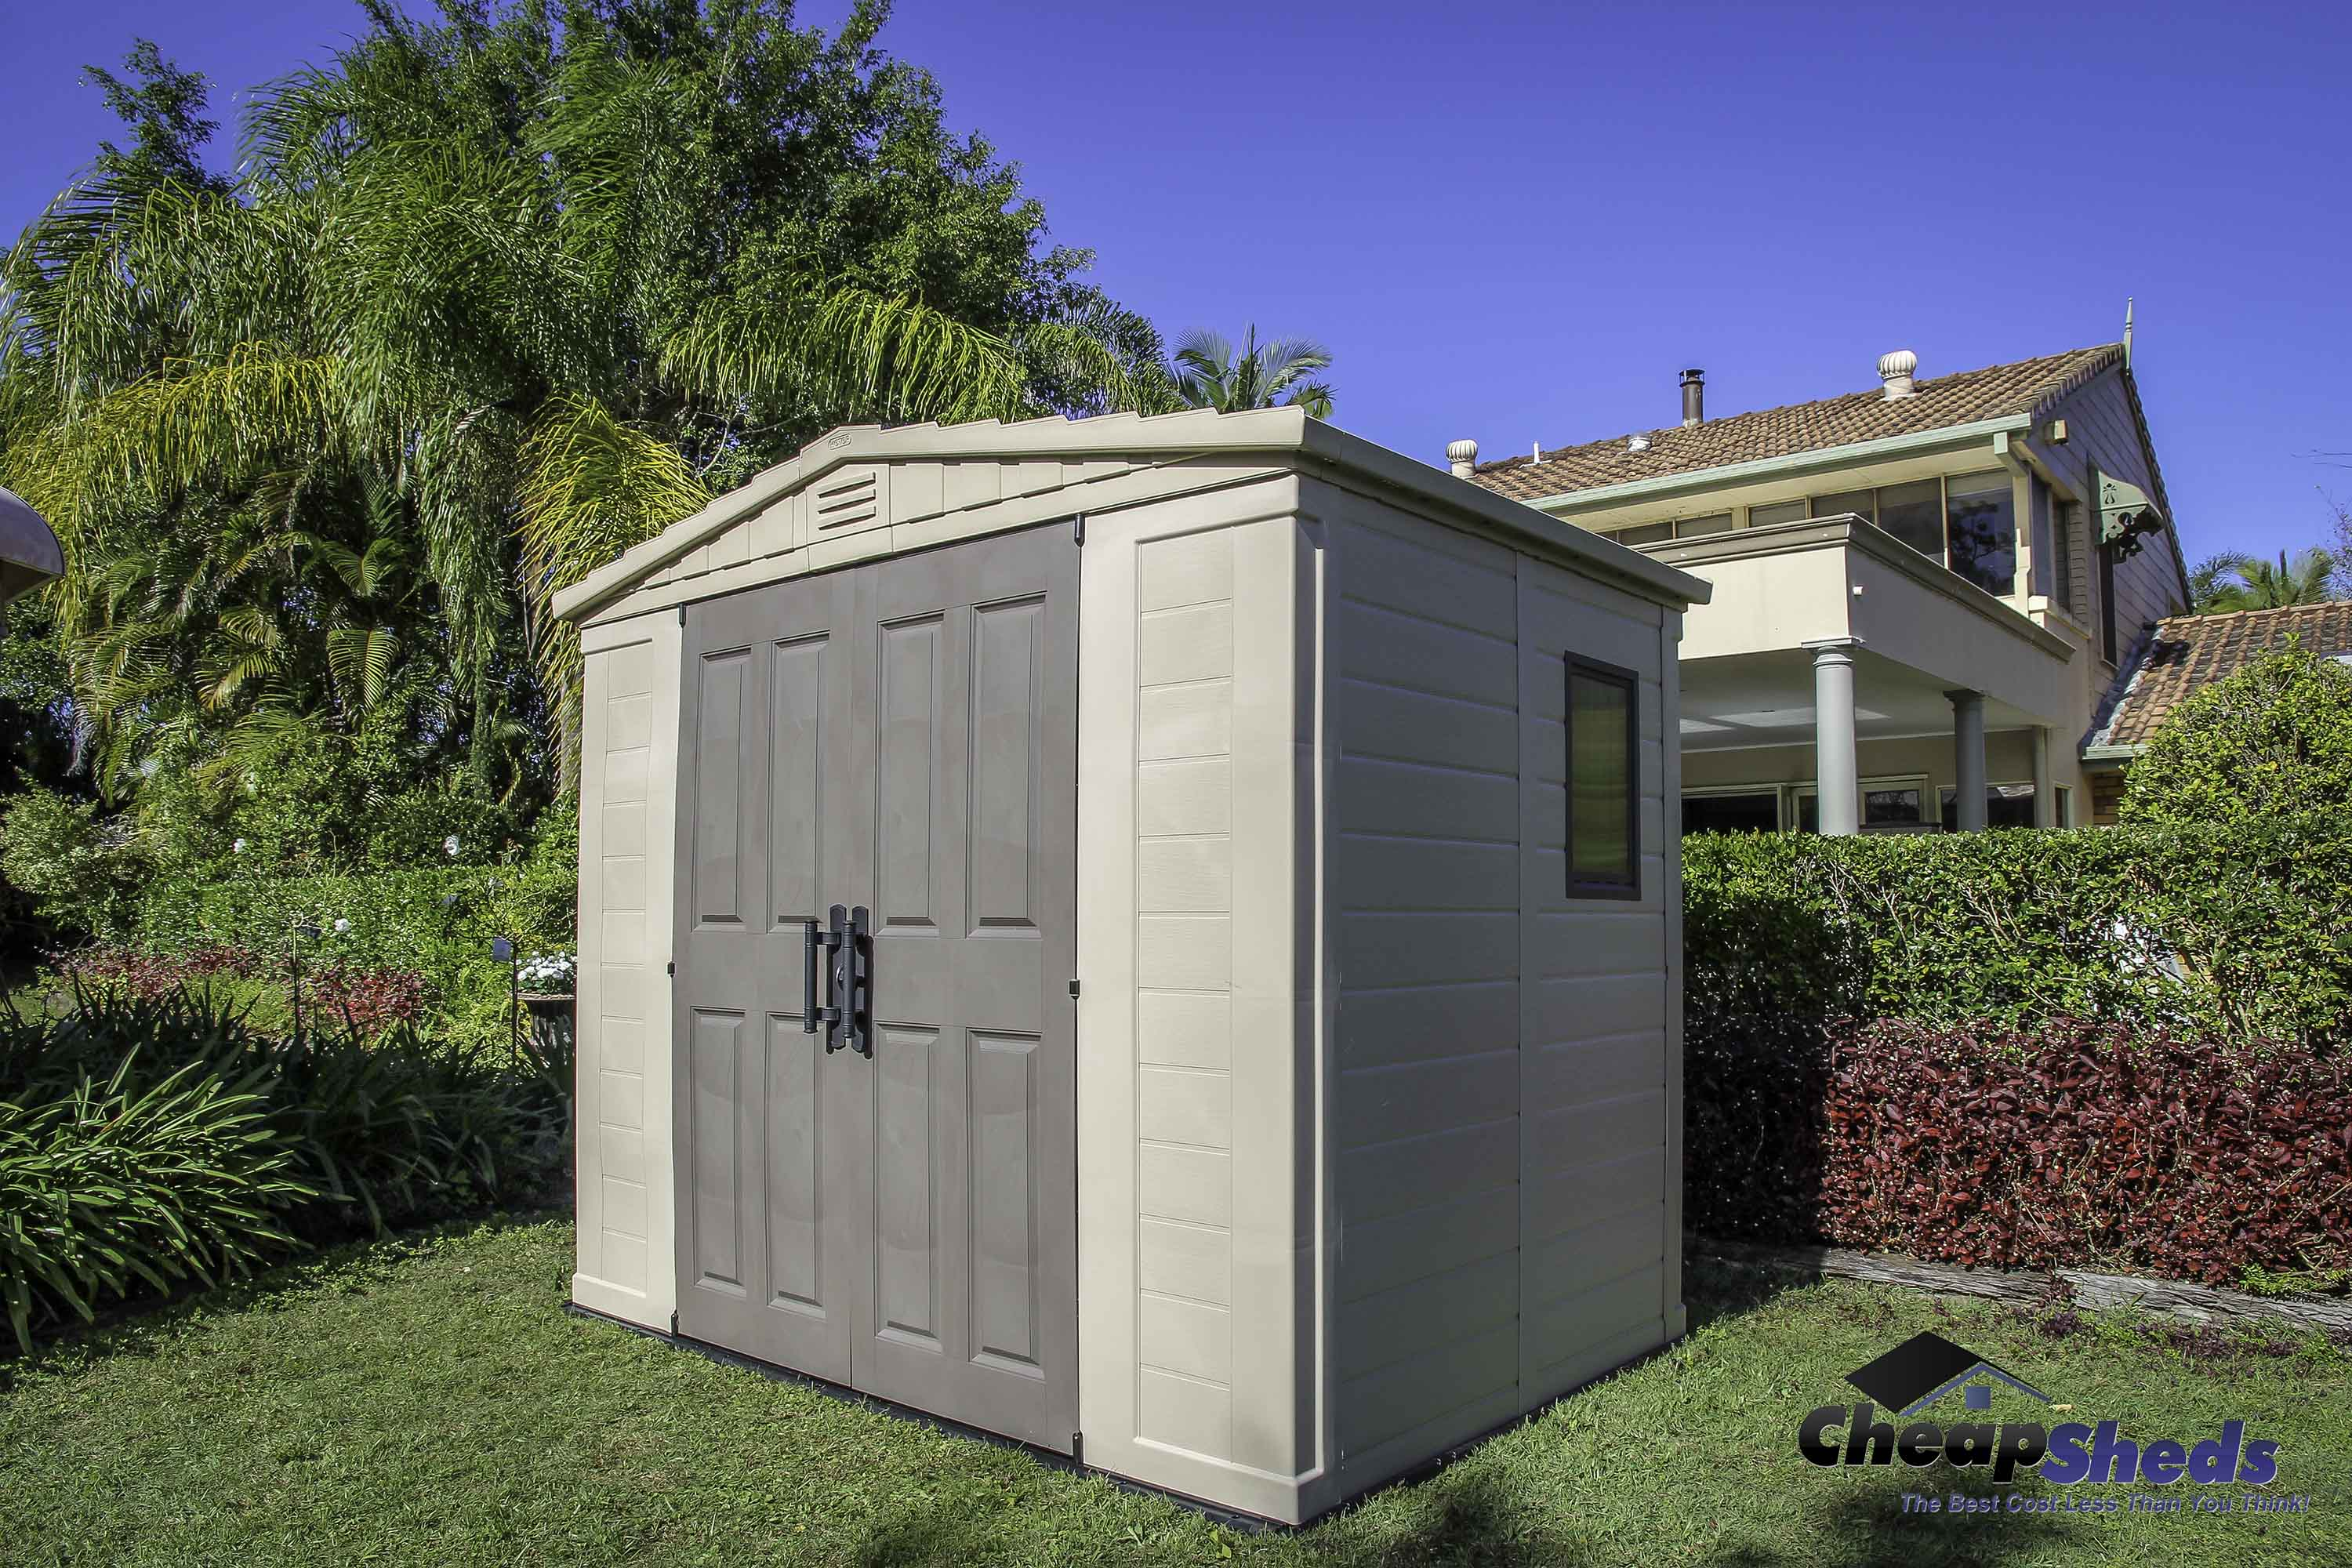 Keter resin storage solutions at cheap sheds cheap sheds for Resin garden shed